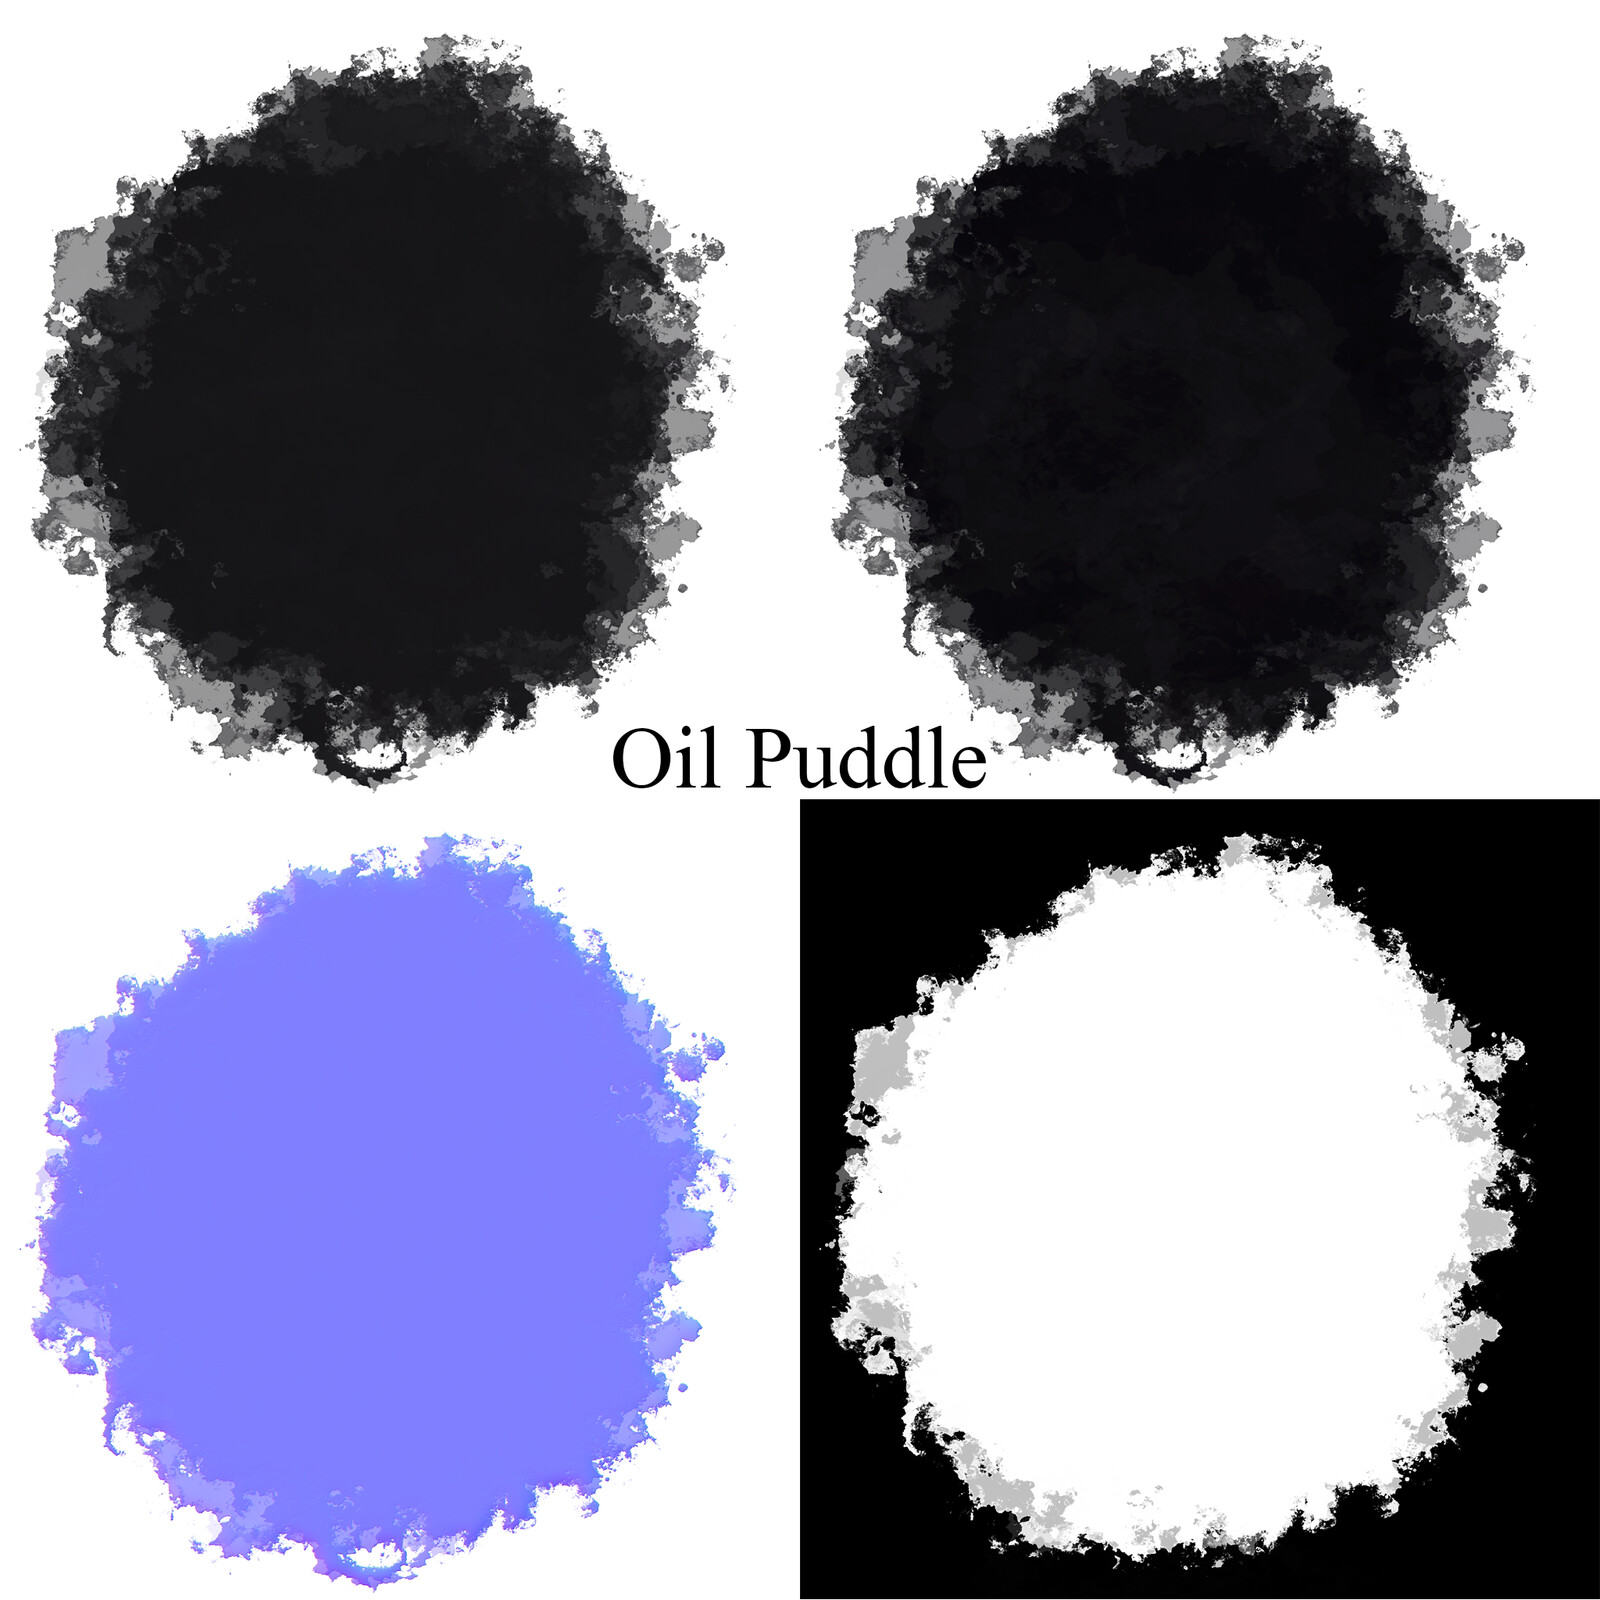 Albedo, Roughness, Normal, and Opacity maps for the oil puddle decals